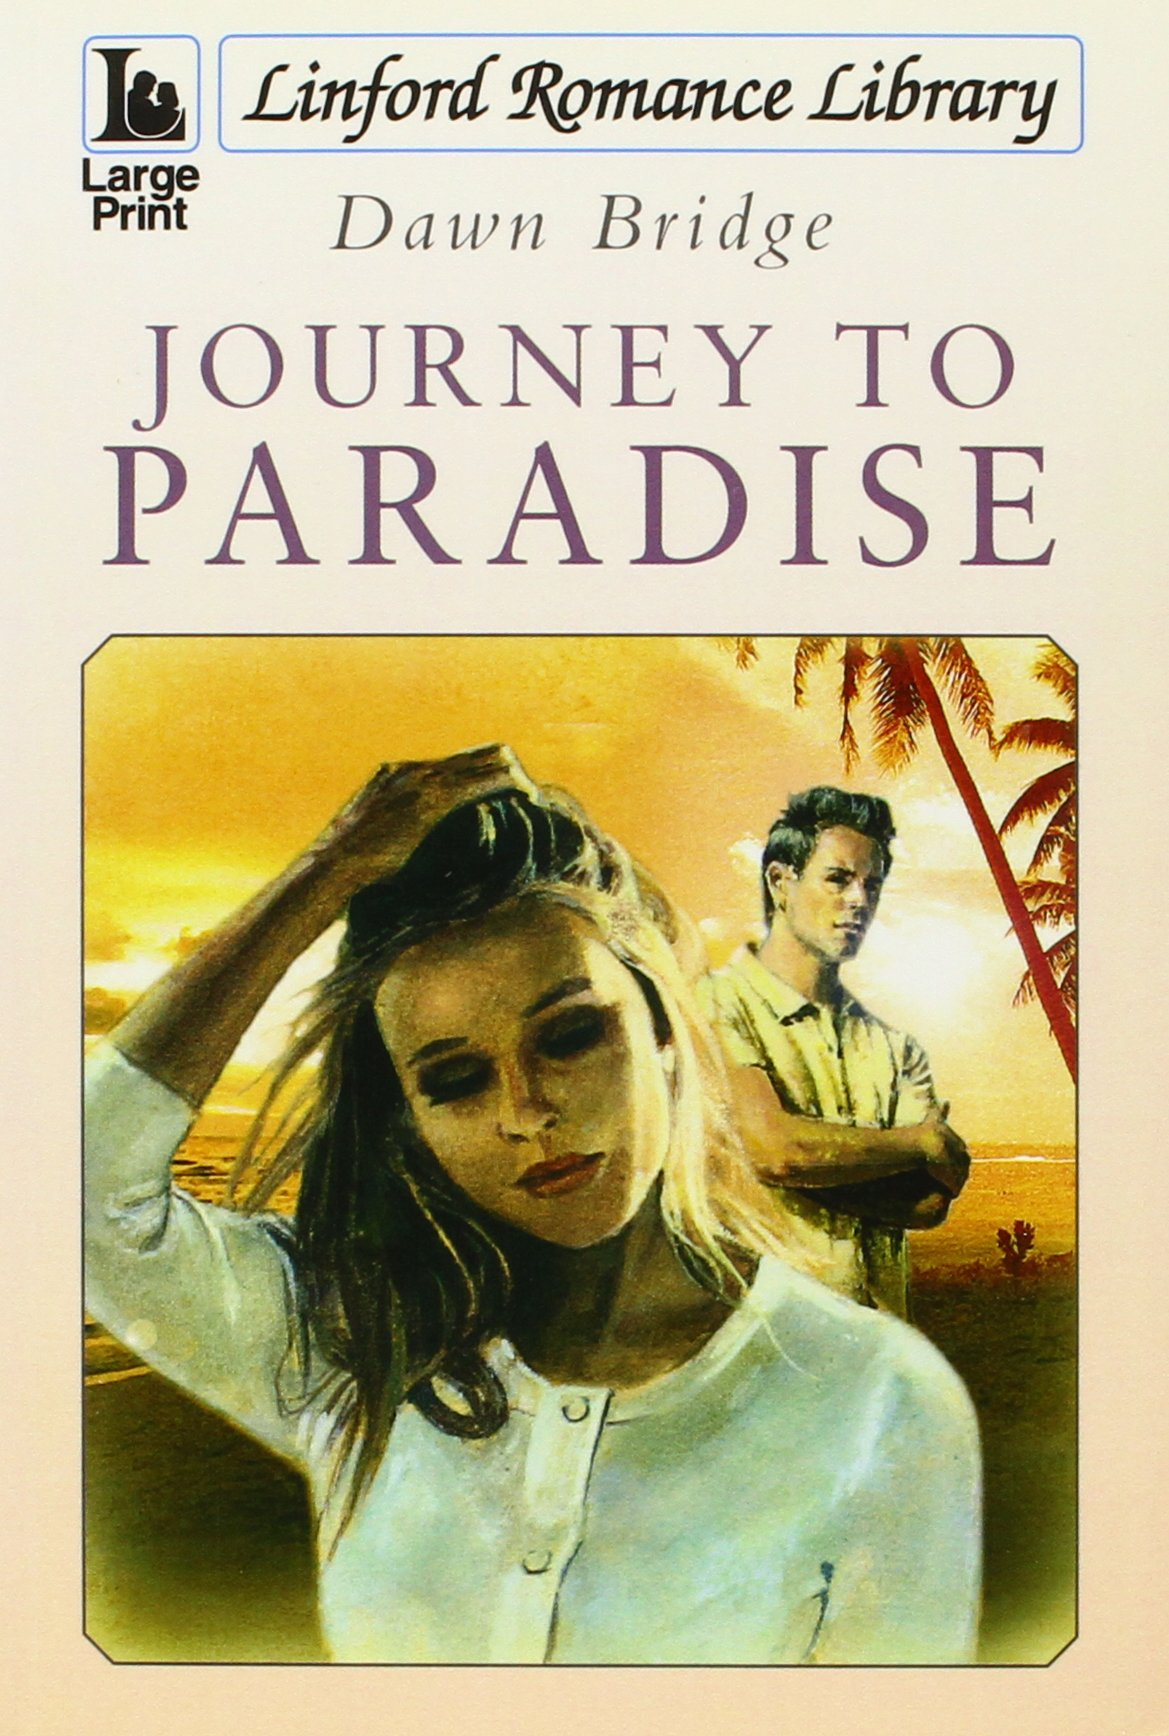 Download Journey To Paradise (Linford Romance Library) pdf